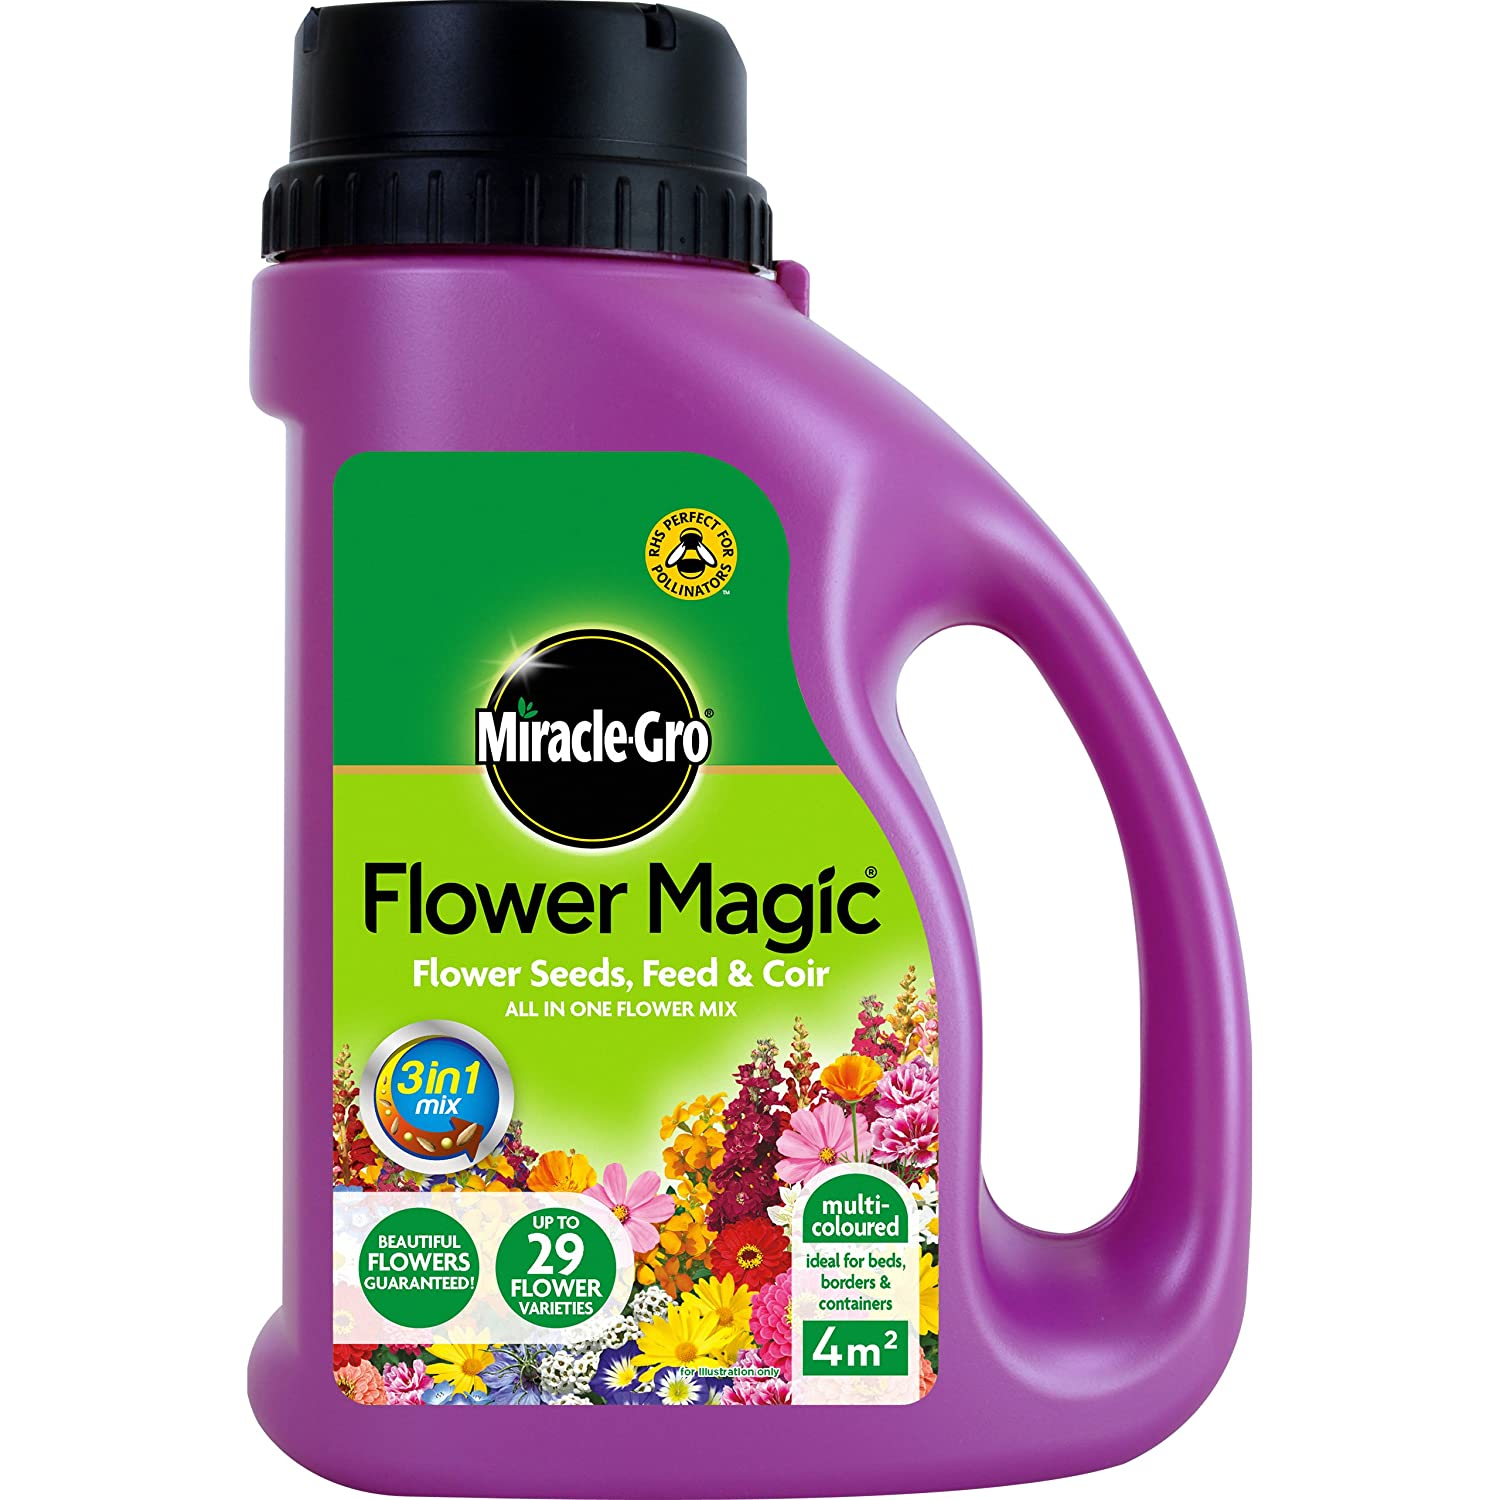 Miracle-Gro 1kg Flower Magic Flower Seeds with Feed and Coir Mix Jug (Multi-coloured) Evergreen Garden Care Ltd 018005